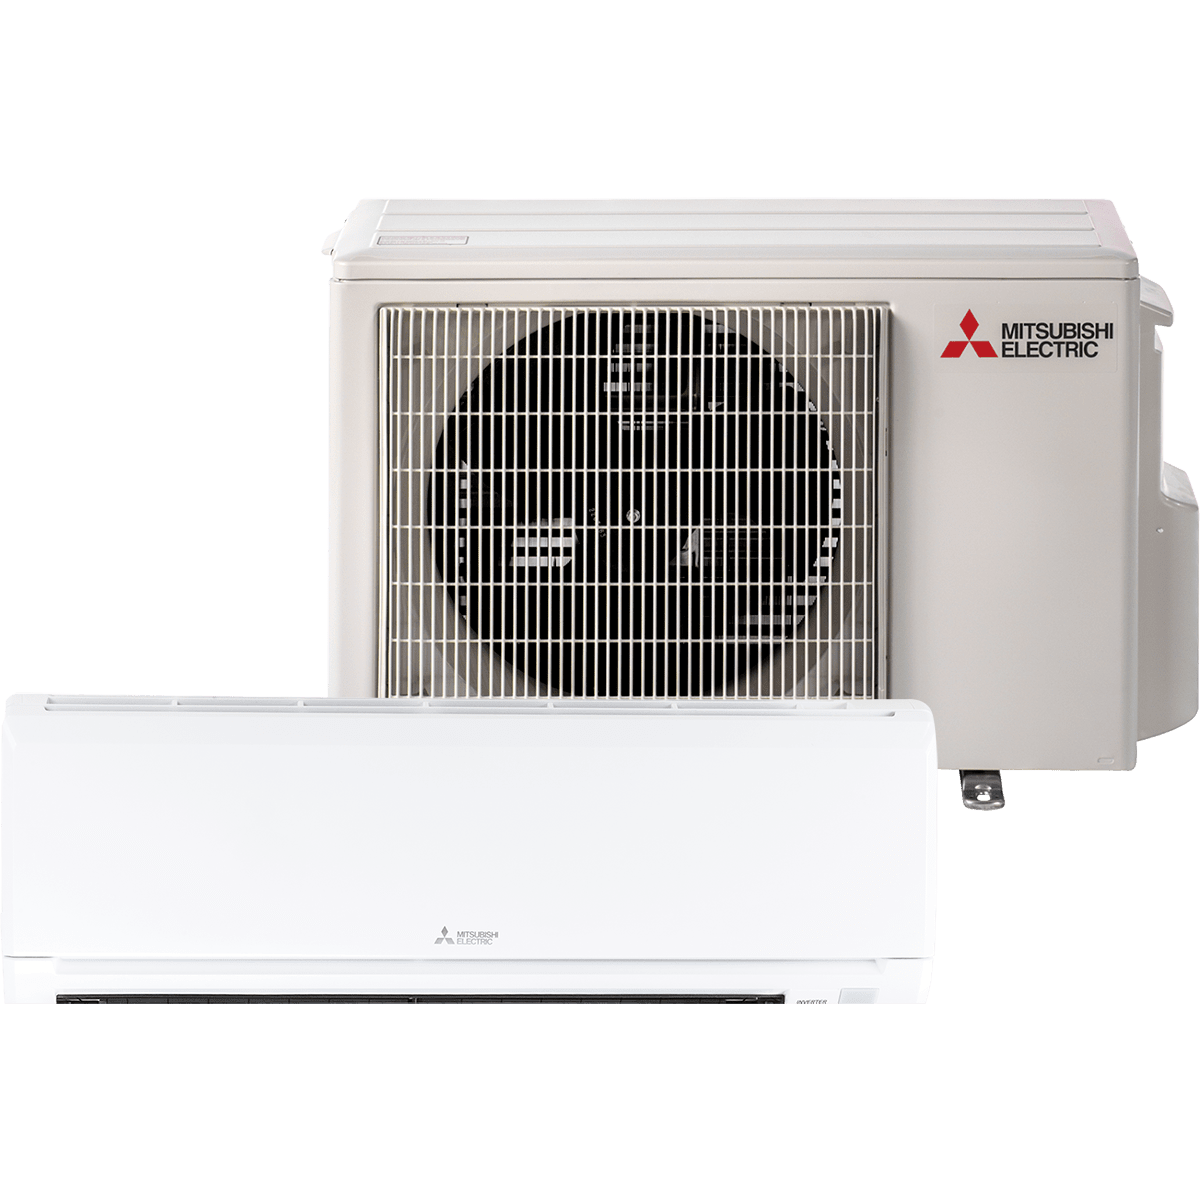 Perfect Mitsubishi 18000 BTU Mini Split Air Conditioner With Heat MZ GL18NA